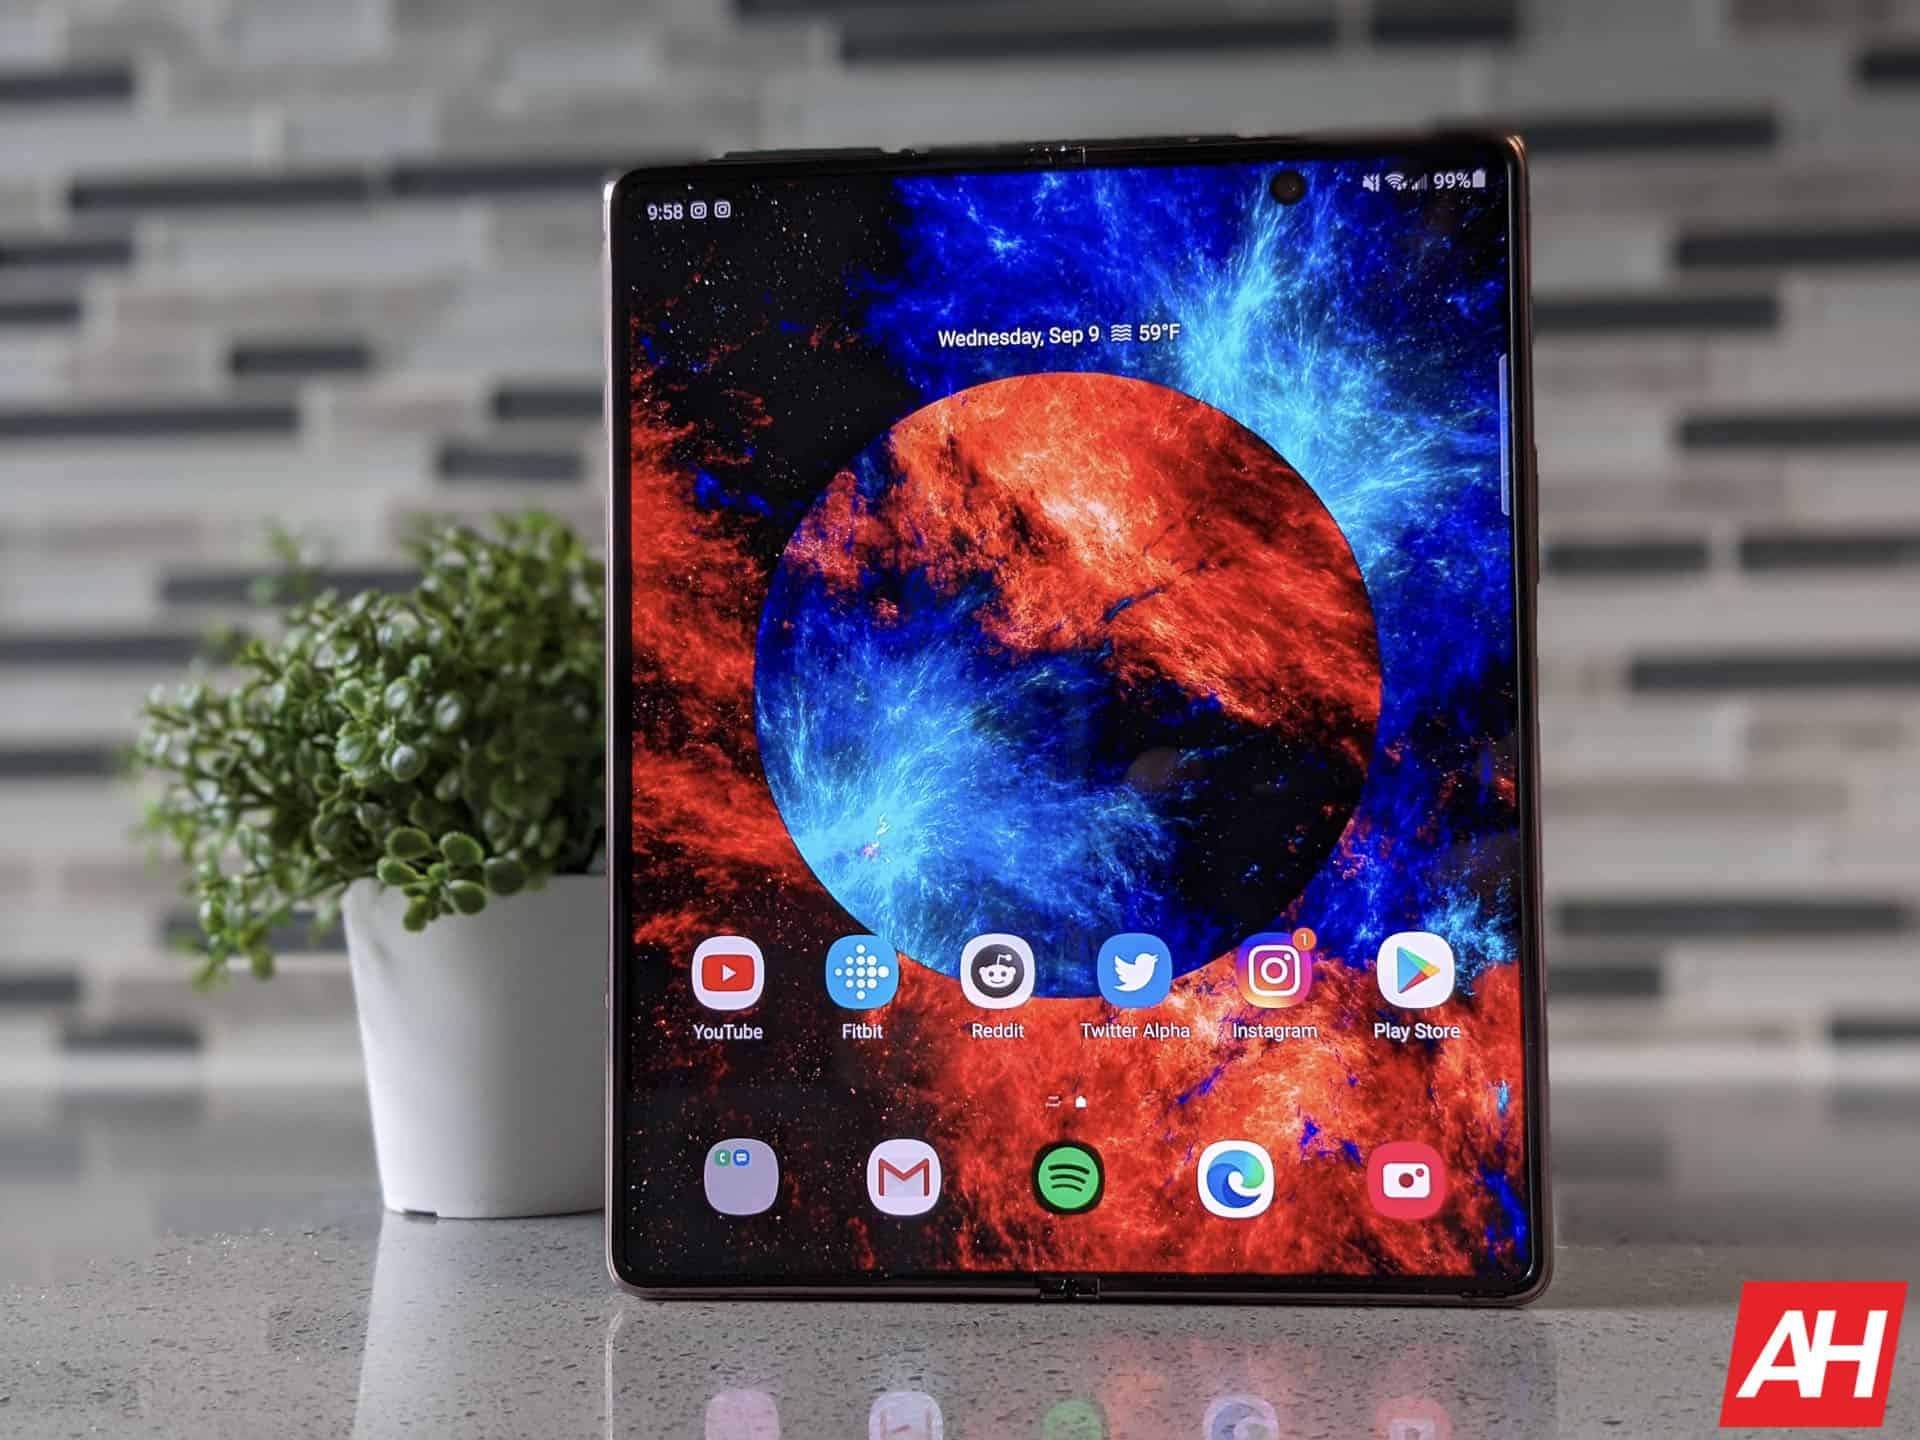 Phone Comparisons: Samsung Galaxy Z Fold 2 vs Xiaomi Mi MIX Fold